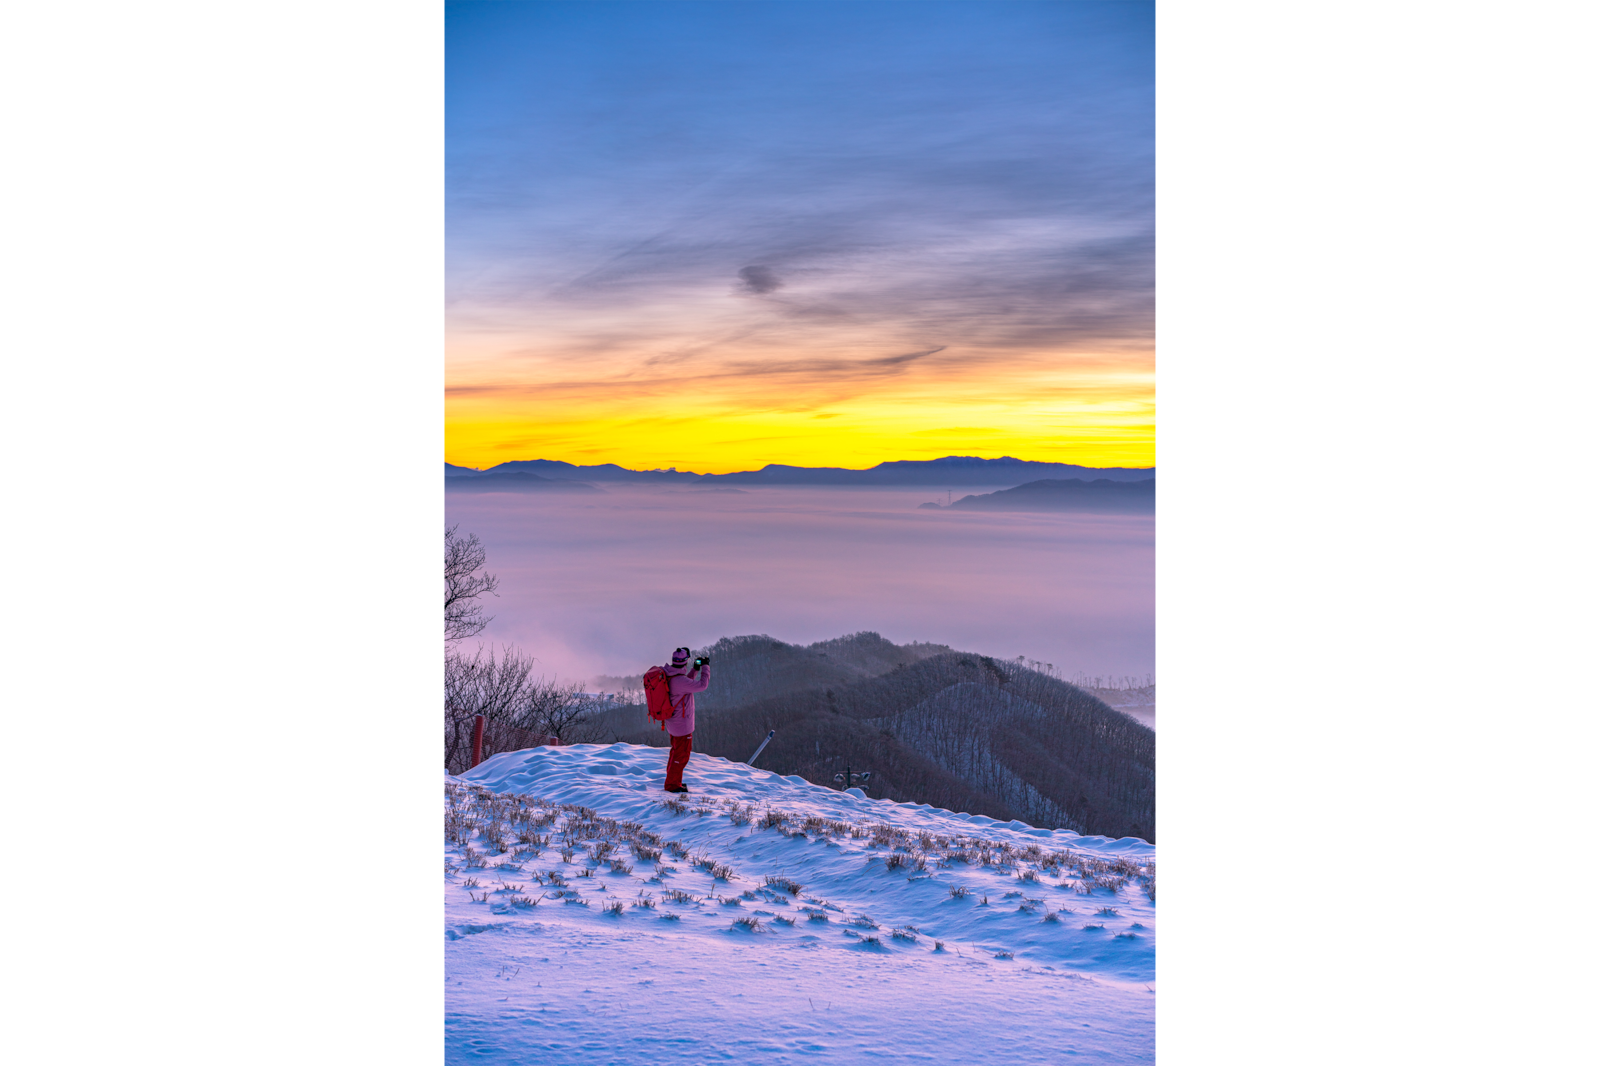 person on snowy mountain top alpha 7RIII